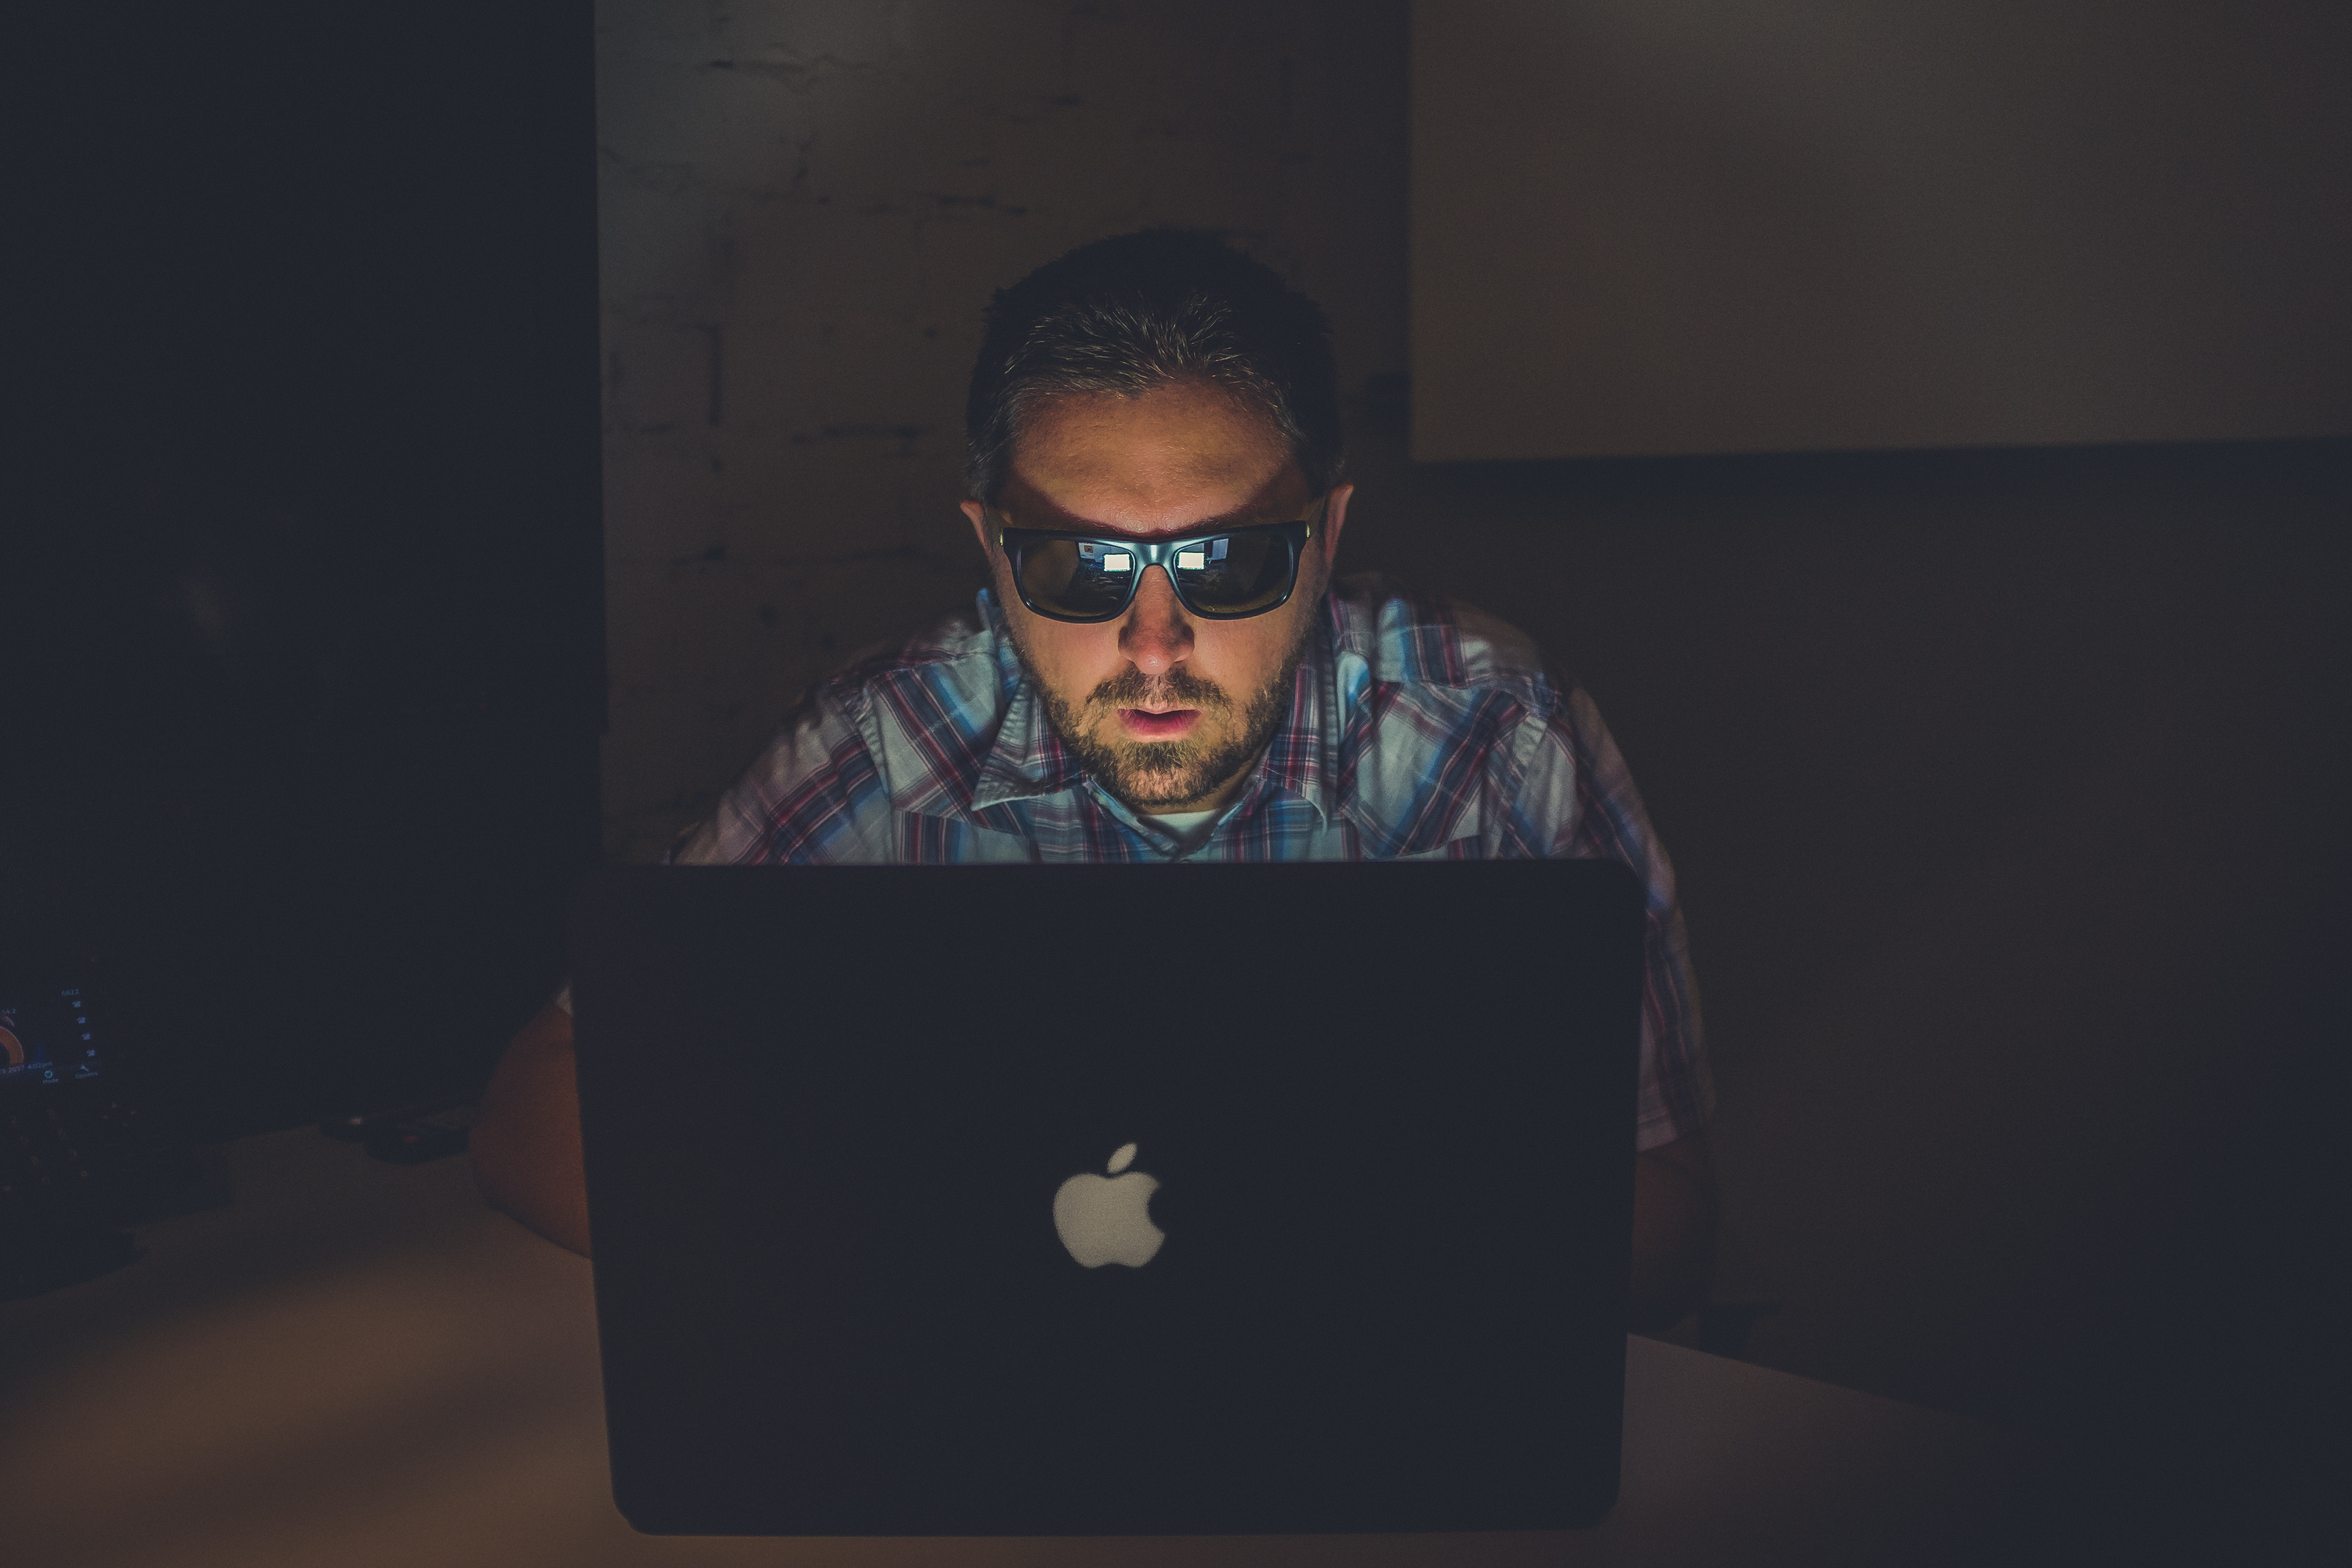 The bad guys are out there, as a CIO are you going to be ready for them?